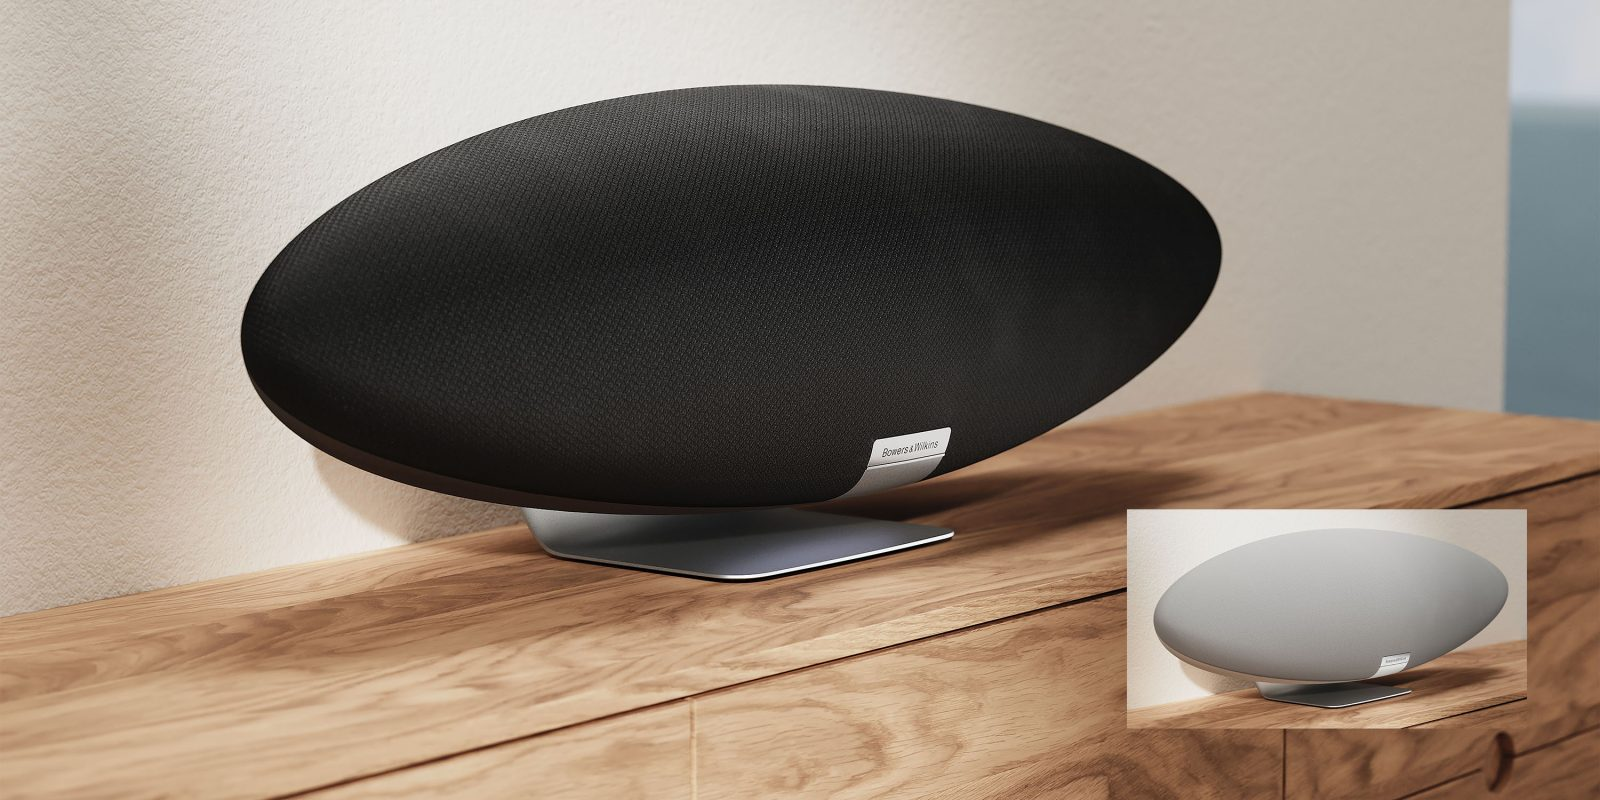 photo of Iconic Bowers & Wilkins Zeppelin finally gets AirPlay 2 in 4th-gen model image